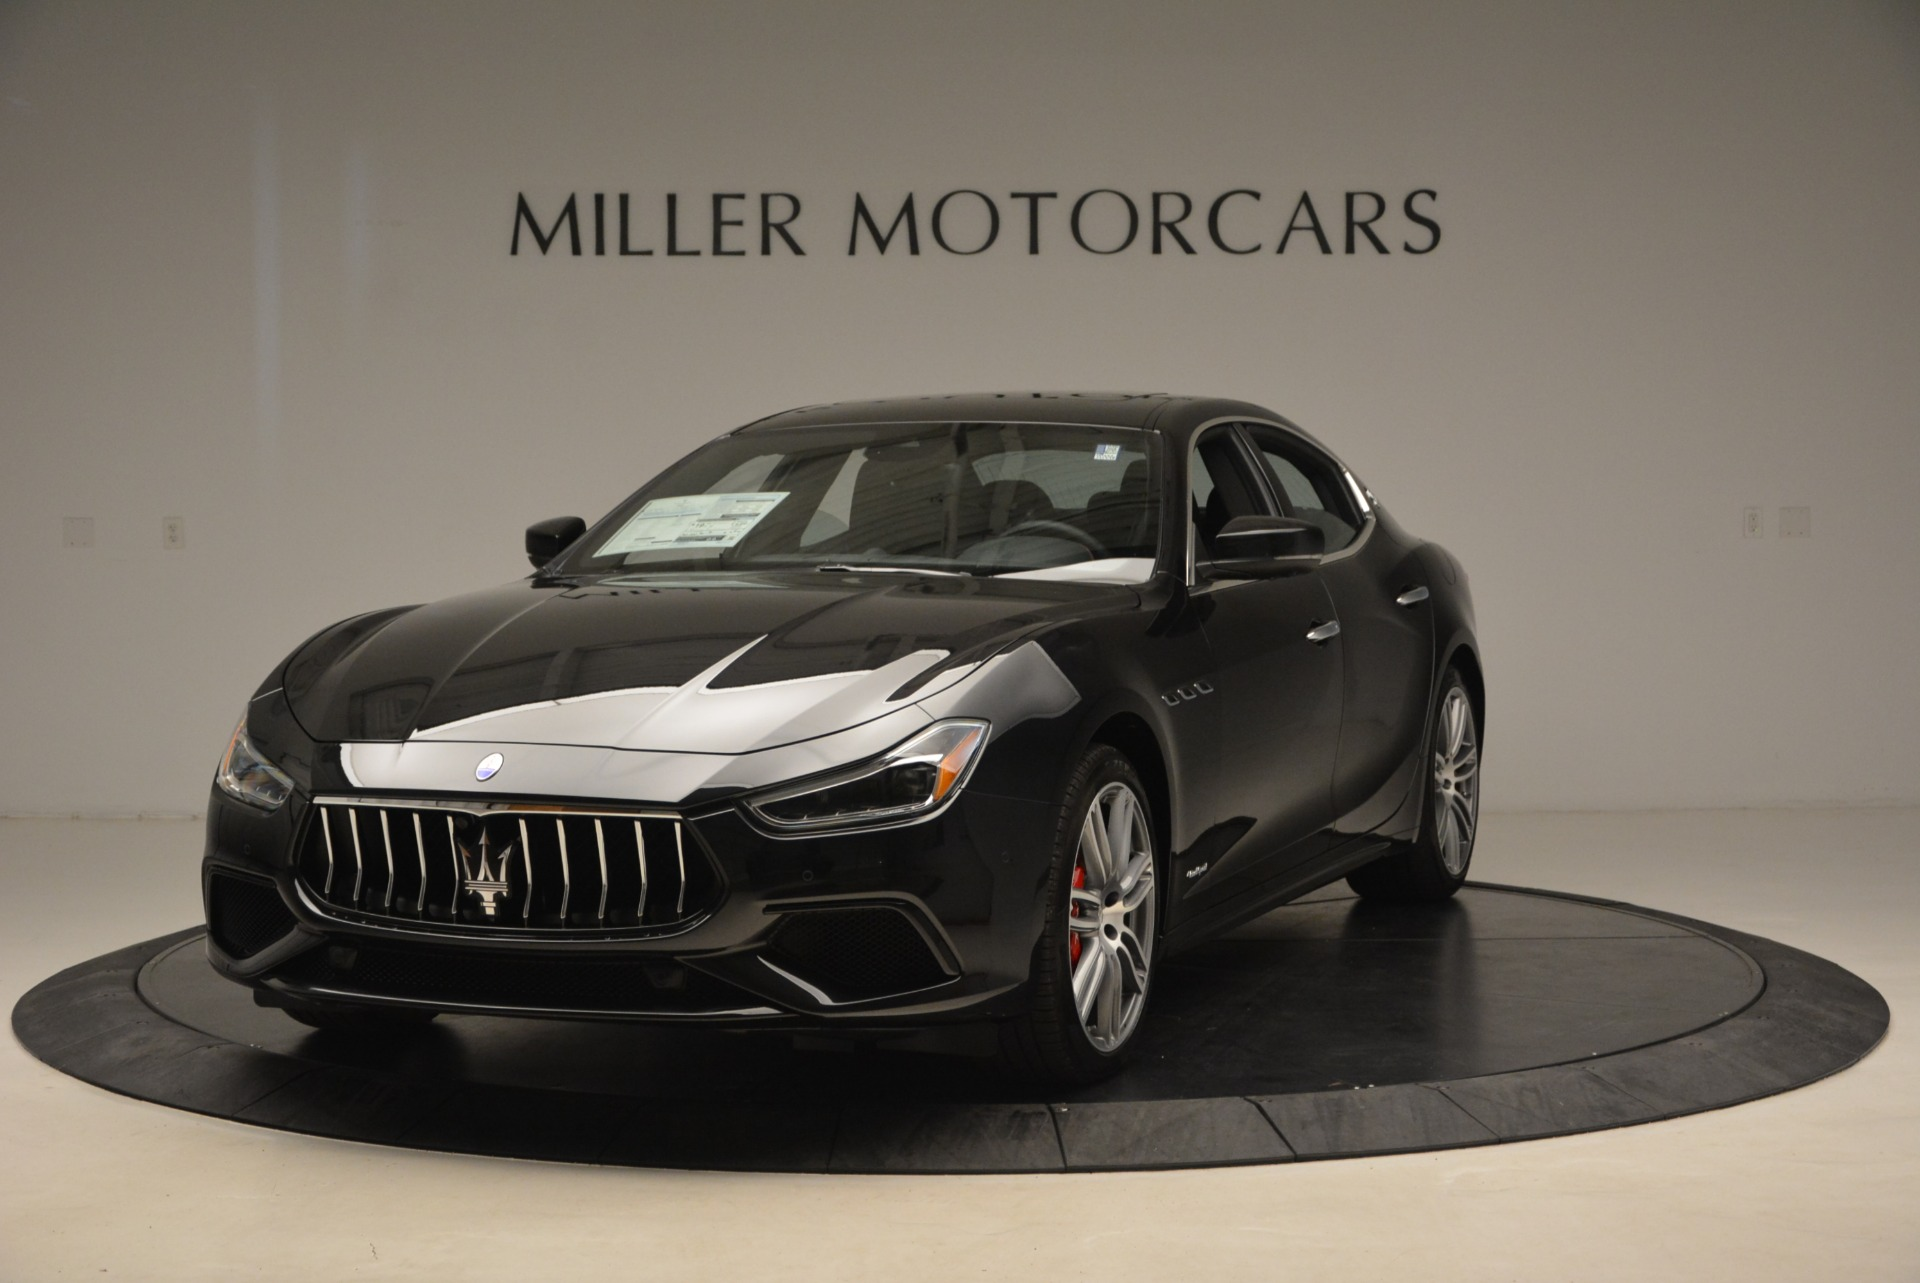 New 2019 Maserati Ghibli S Q4 GranSport For Sale In Greenwich, CT 2597_main